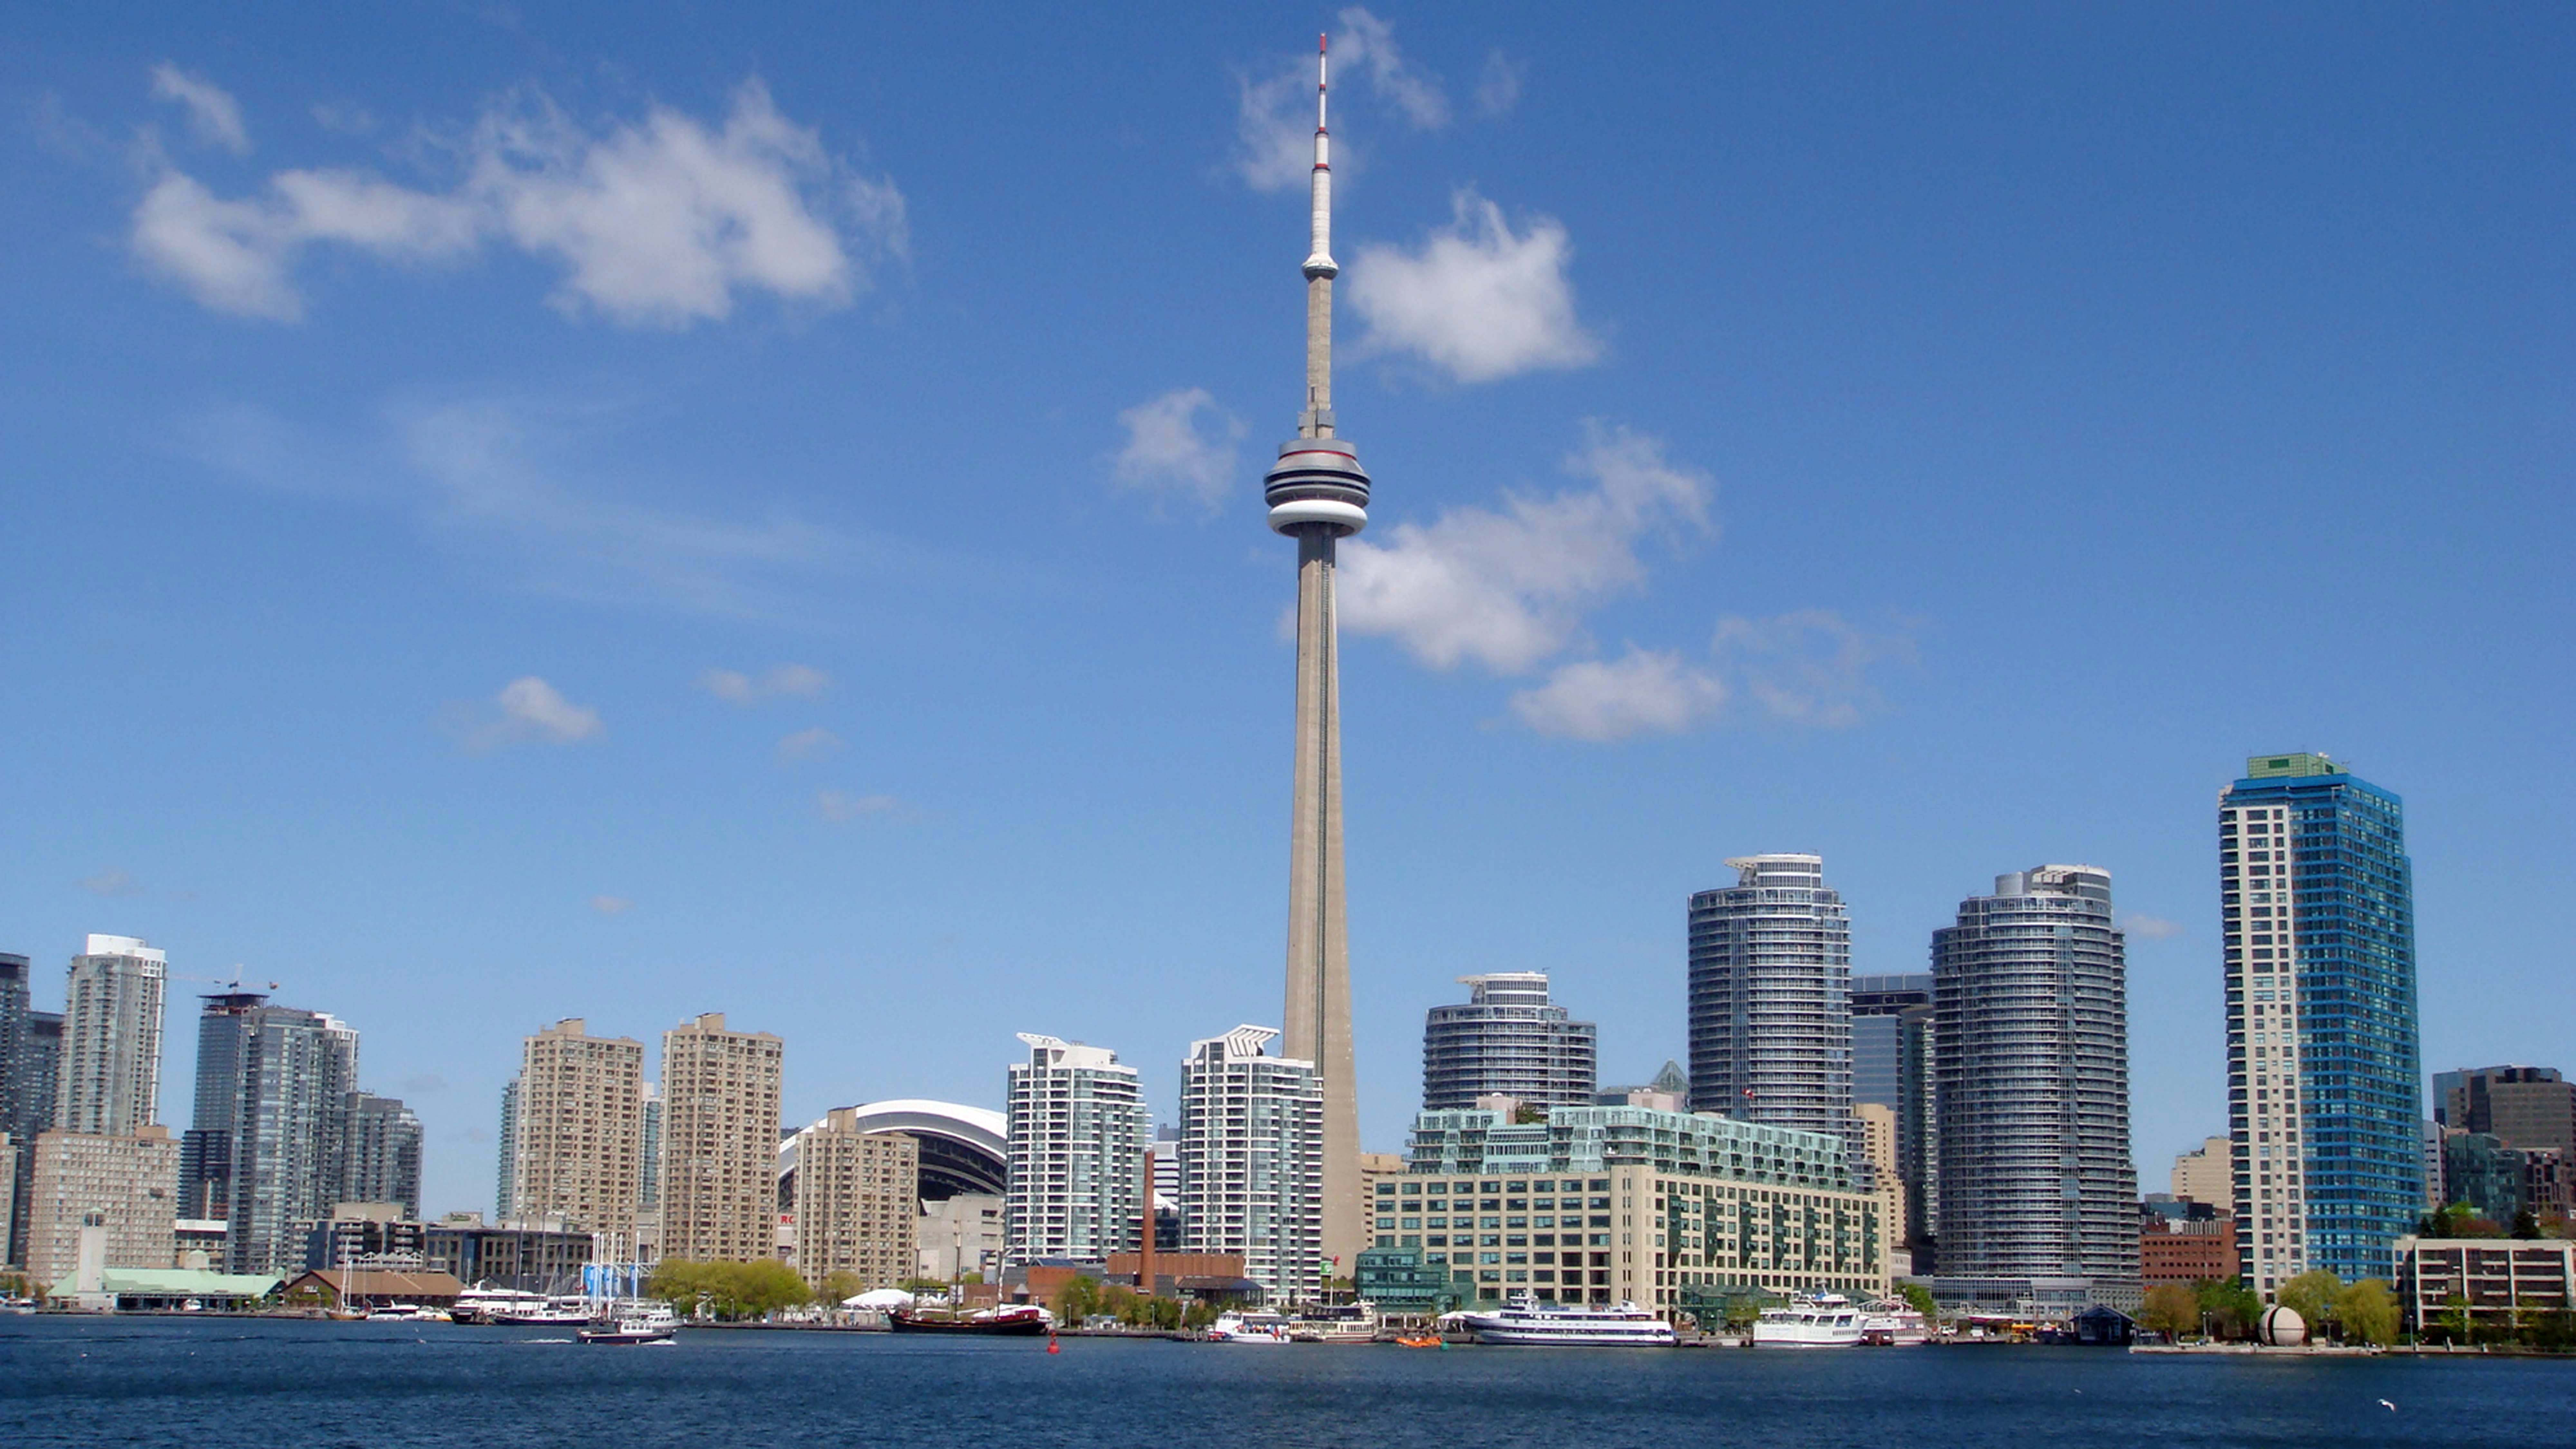 LSC-Toronto-City-Toronto-harbour